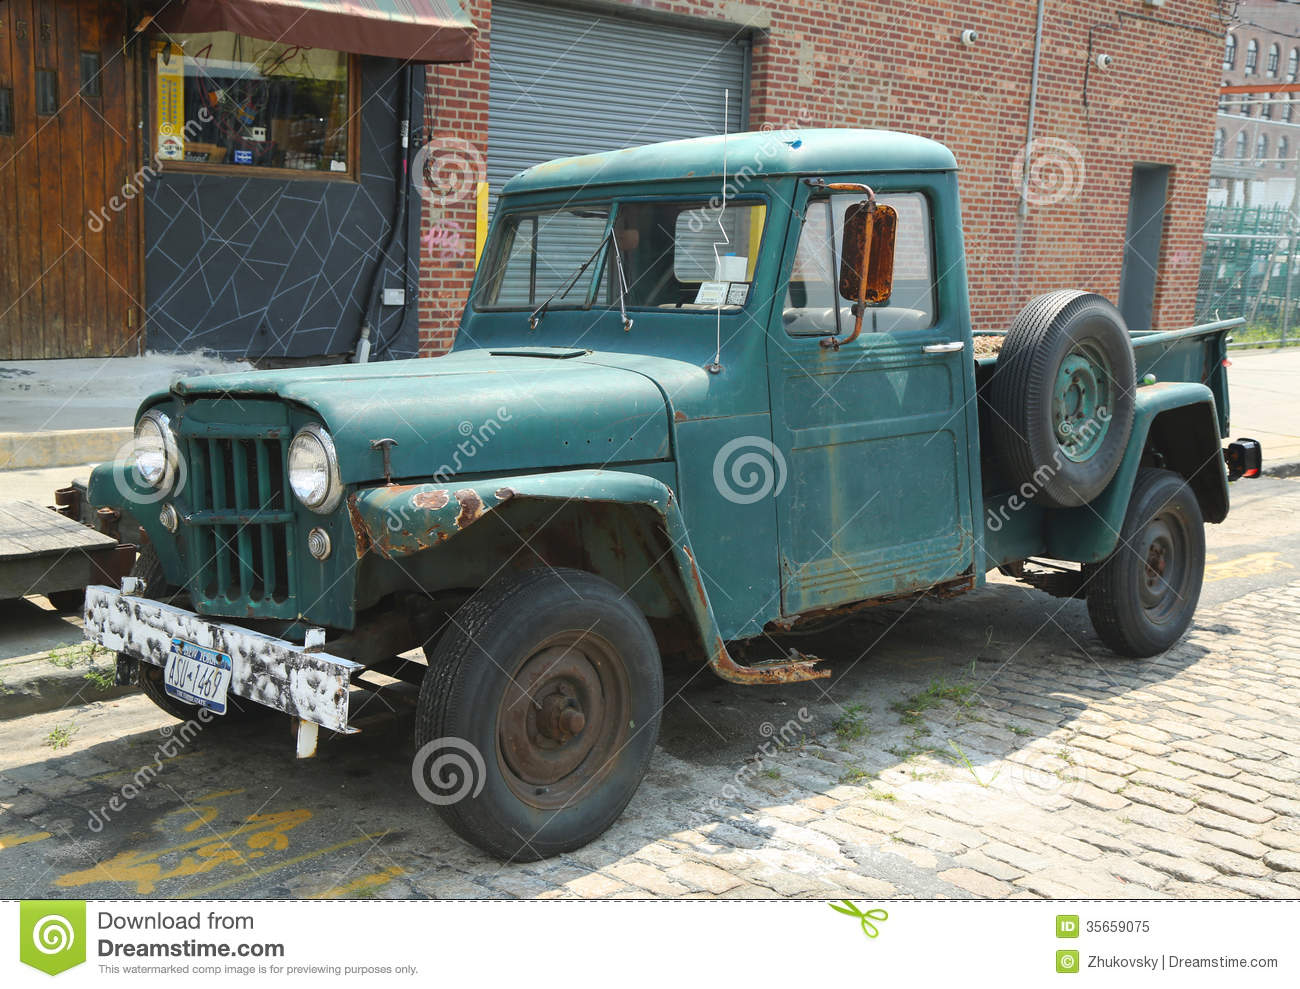 1947 Jeep Truck >> 1953 Willys Jeep Truck In Brooklyn Editorial Image - Image: 35659075